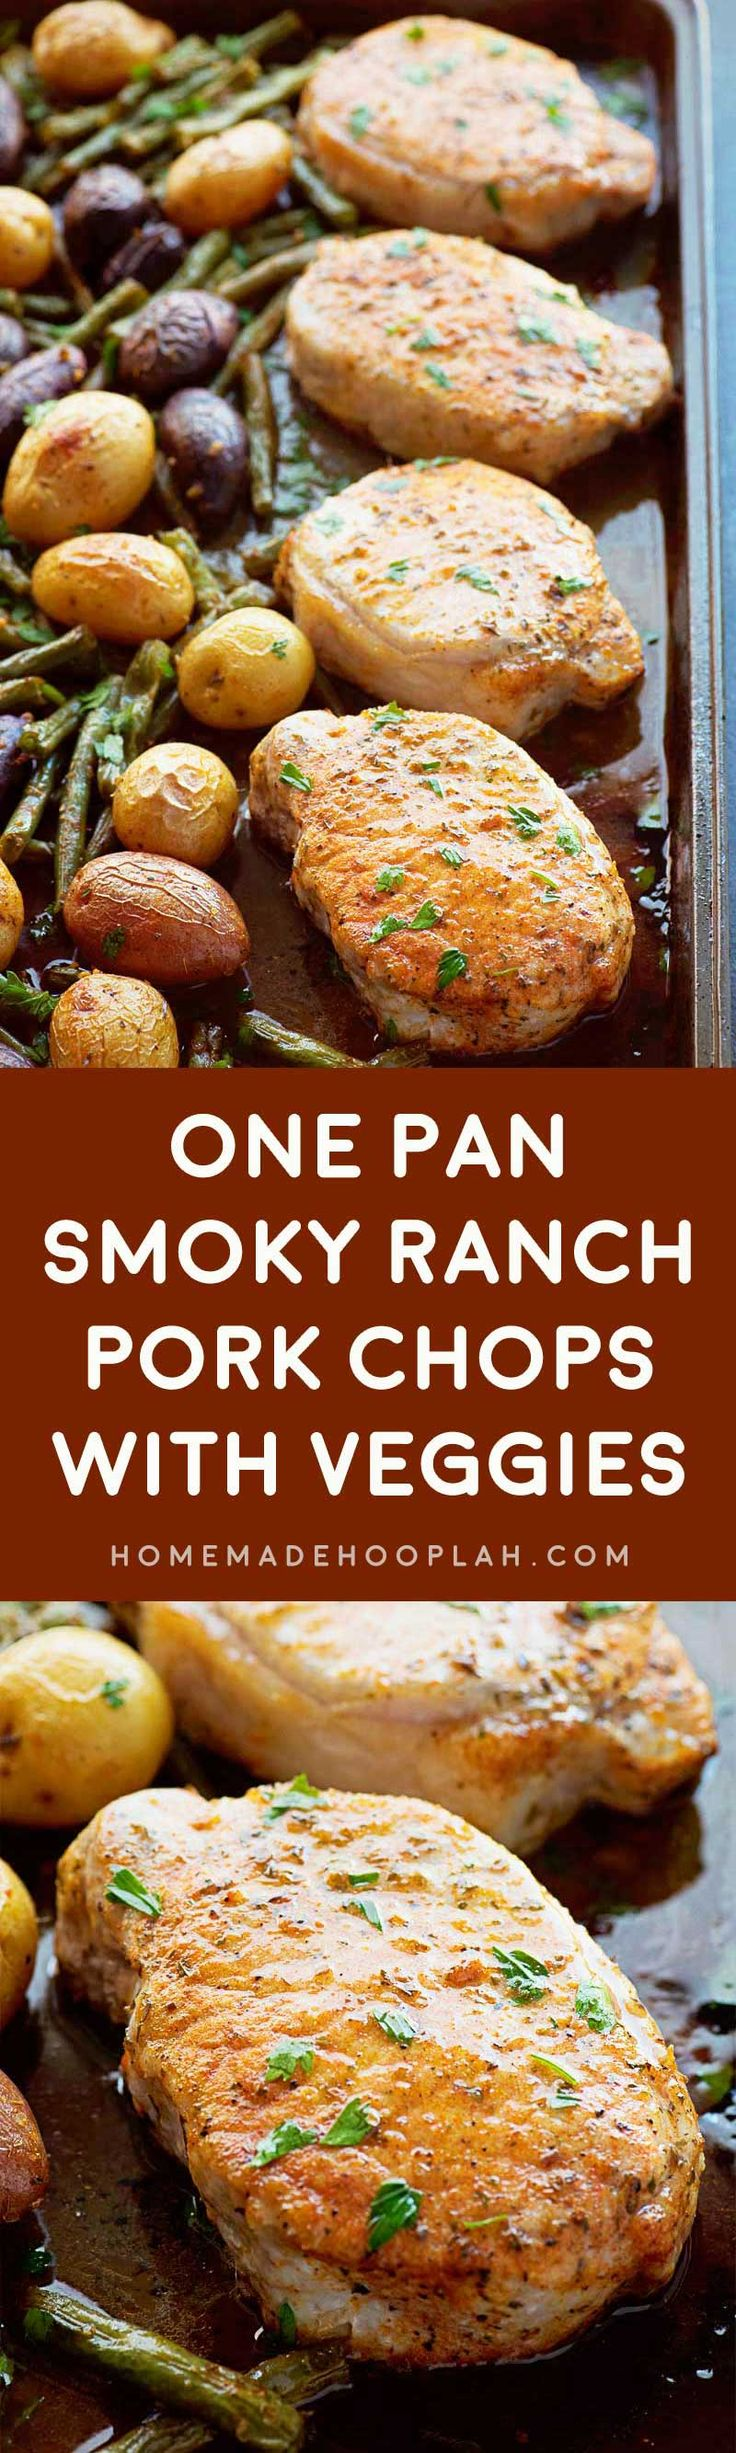 with Veggies! Savory ranch pork chops with a touch of smoked paprika ...